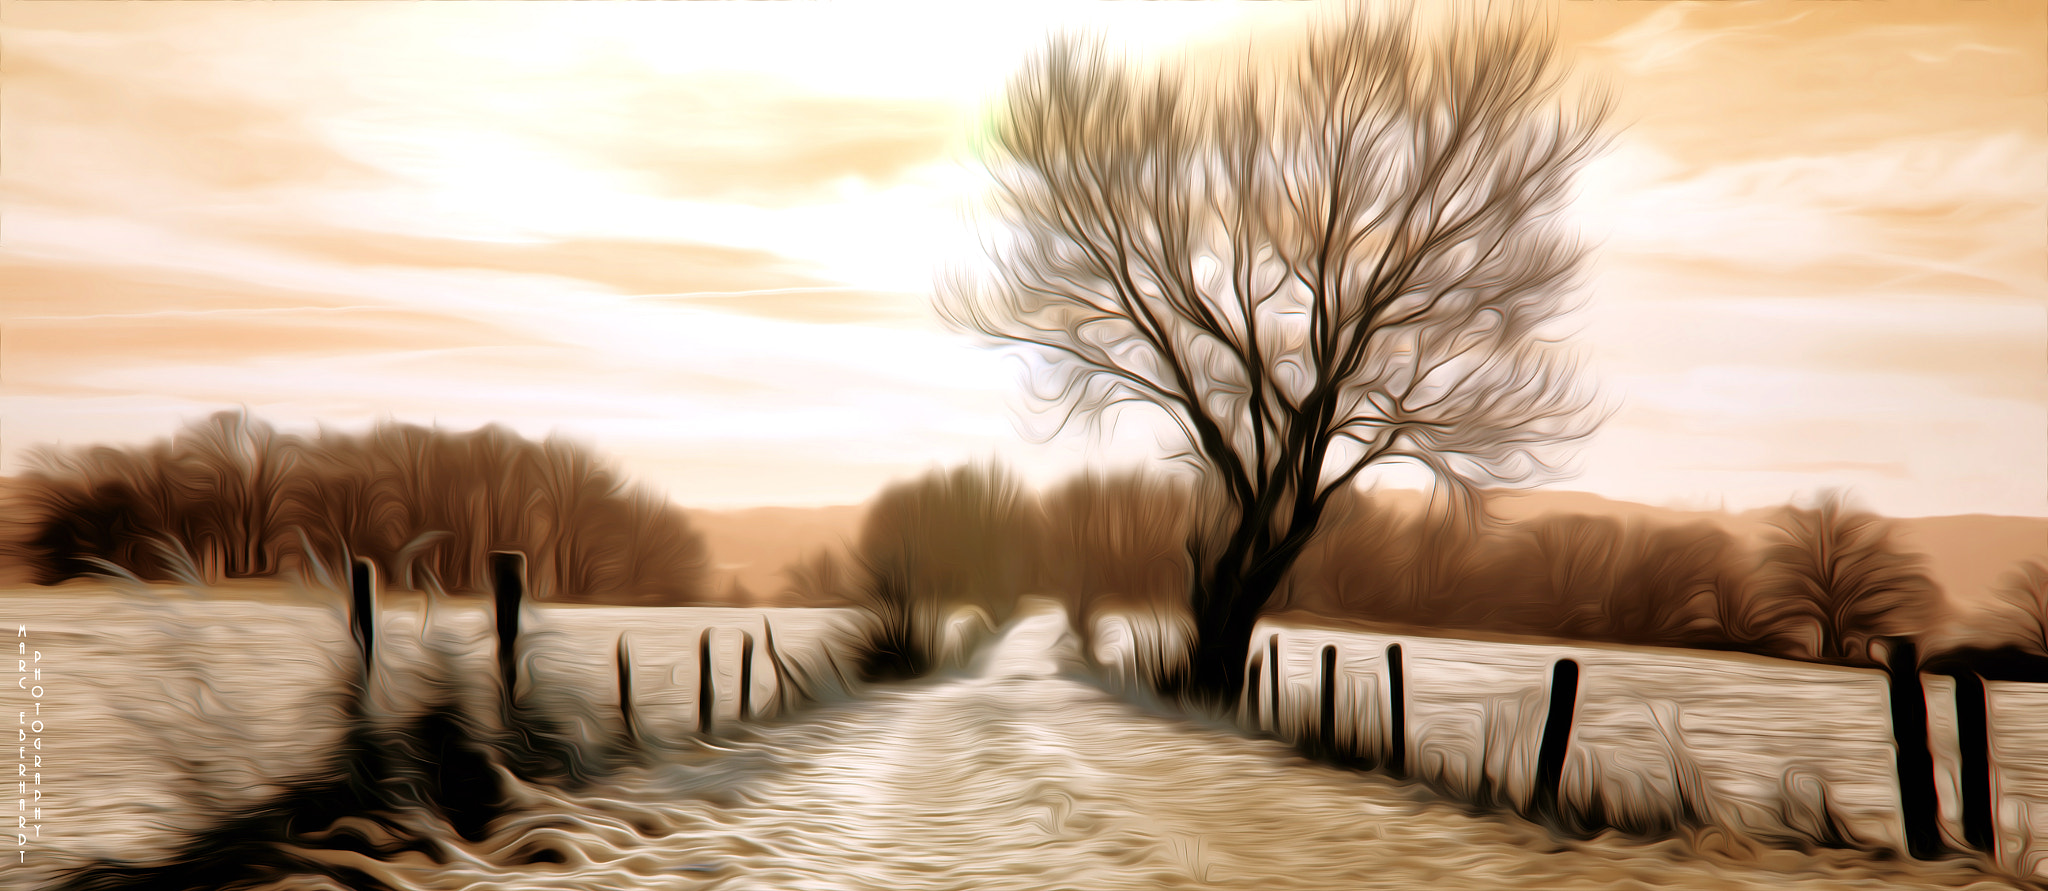 Photograph Winter path by Marc Eberhardt on 500px